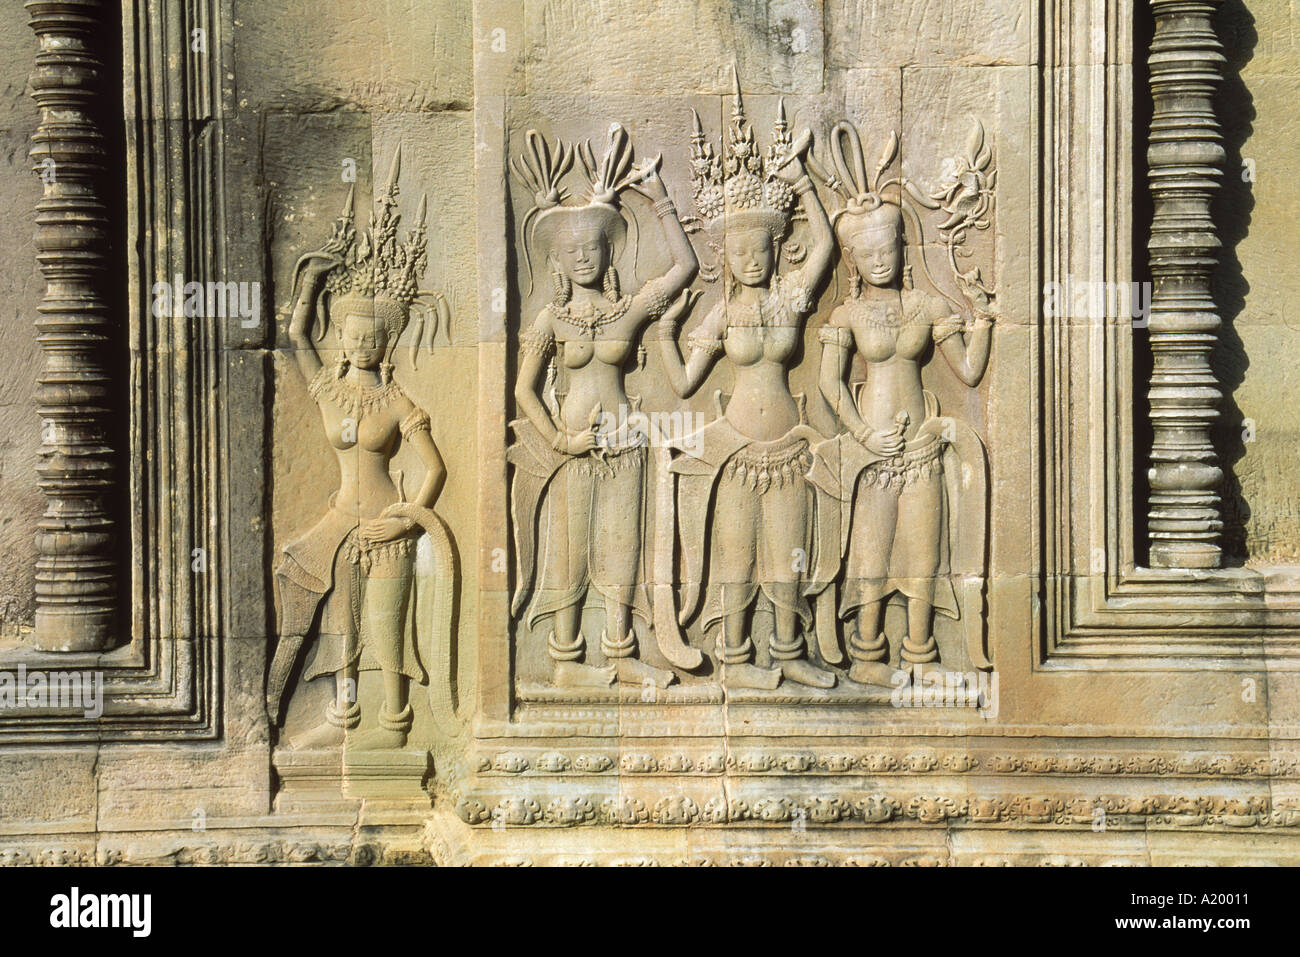 Stone bas reliefs depicting scenes of rural life and historical events on the walls of Angkor Wat Siem Reap Cambodia Asia G - Stock Image